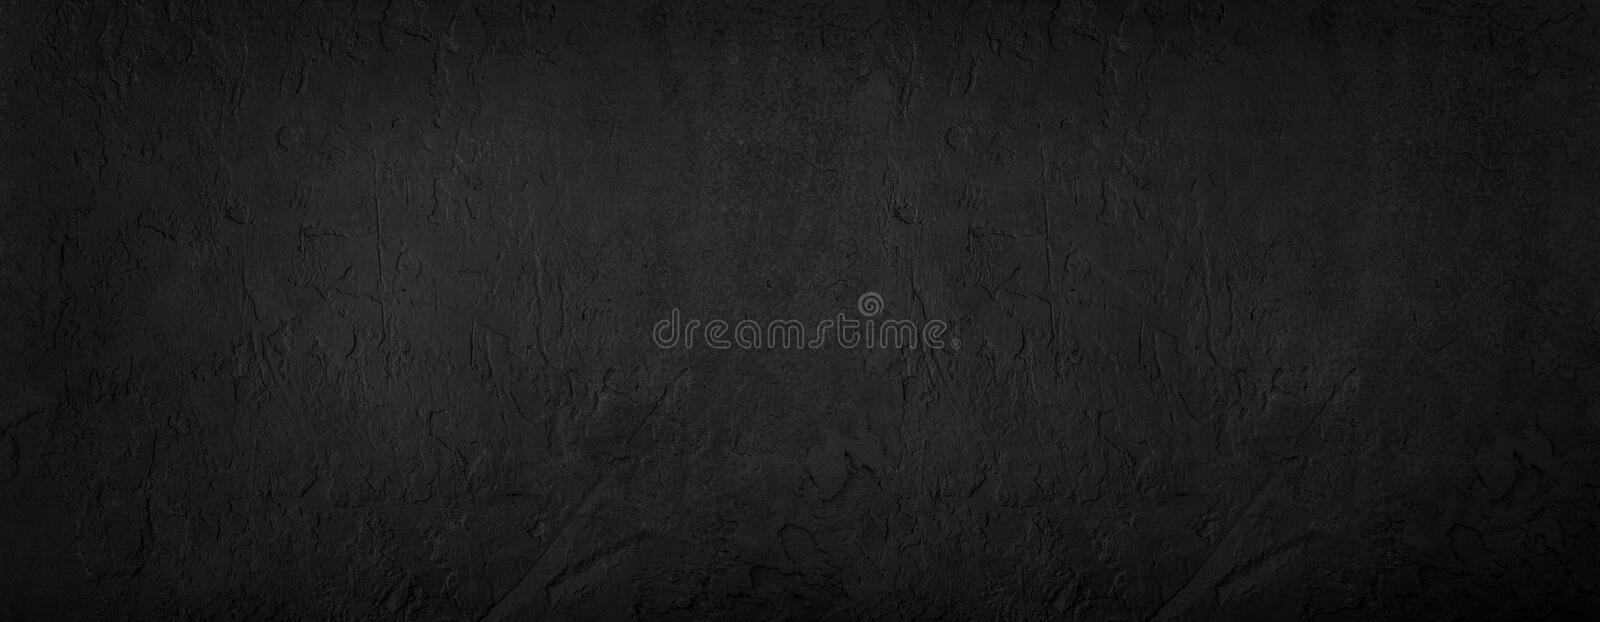 Black stone background, grey cement texture. Top view, flat lay.  royalty free stock image